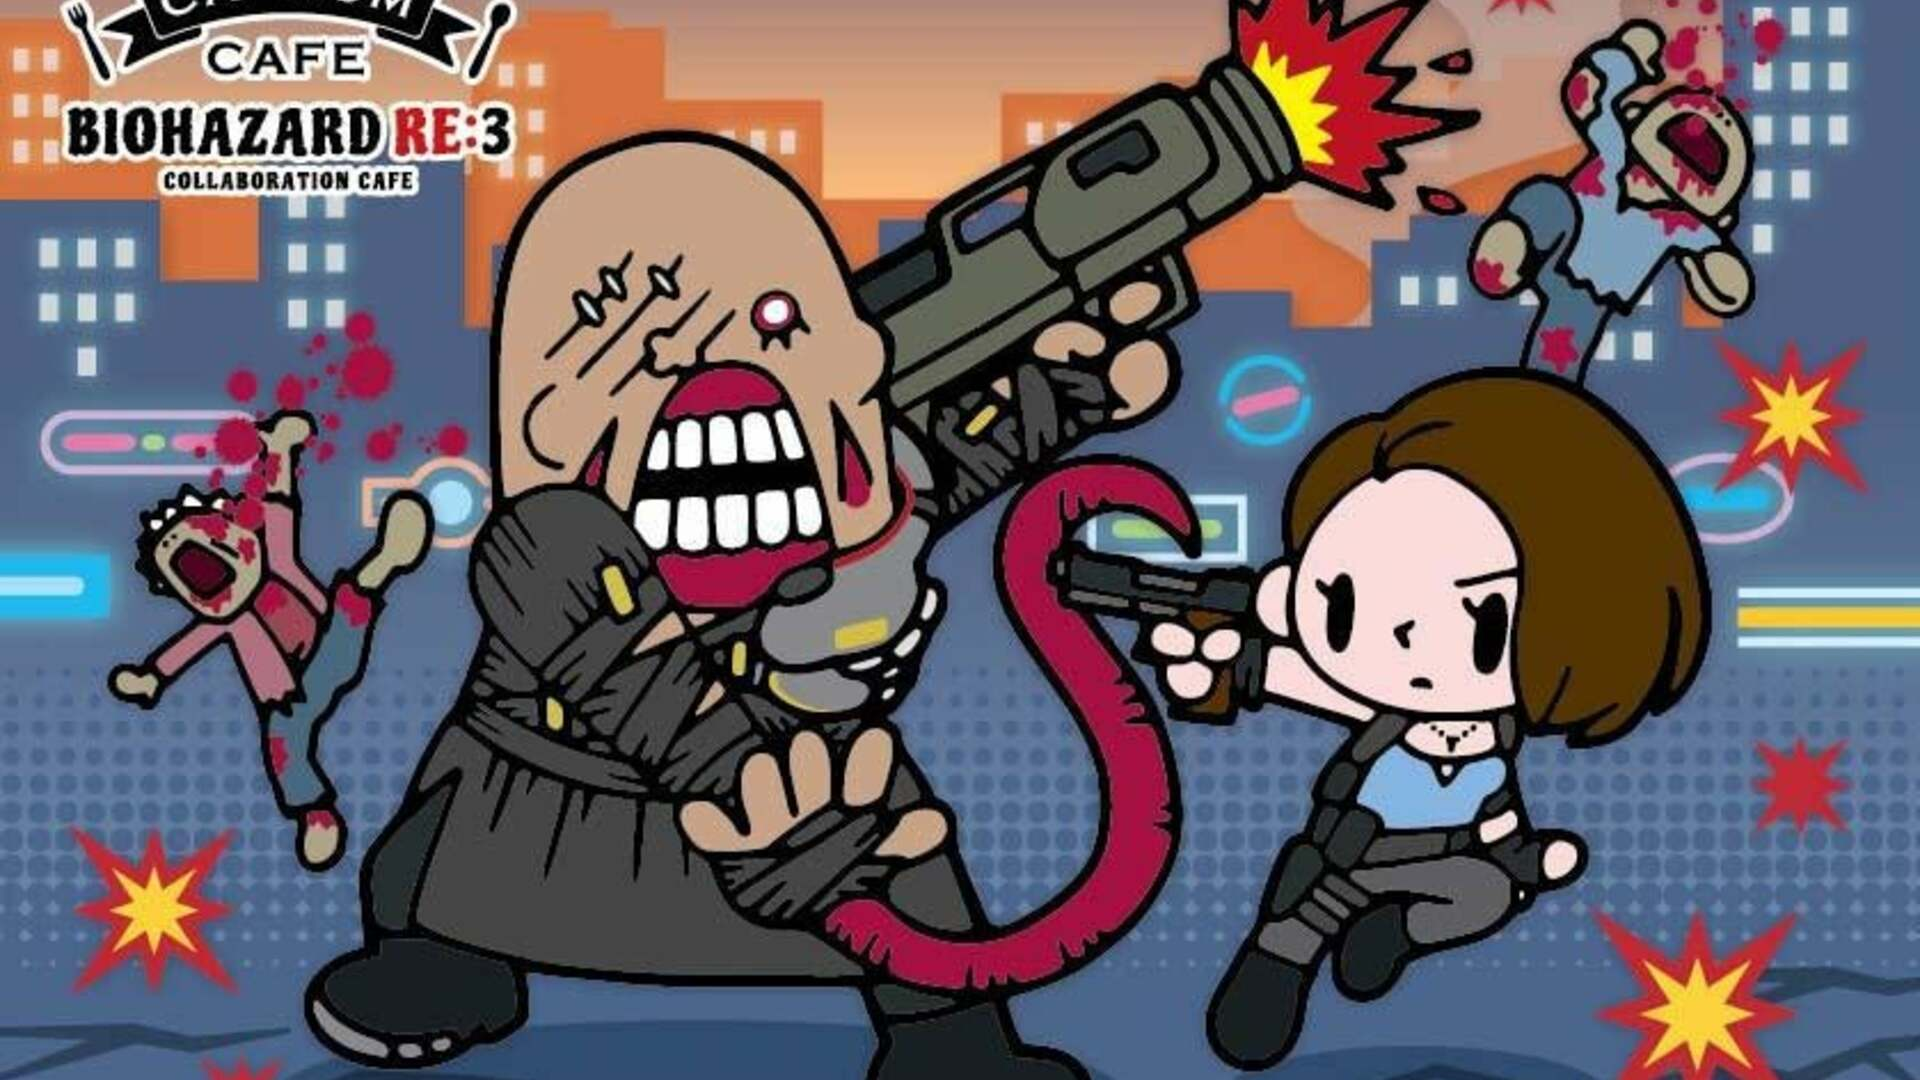 Resident Evil 3 Comes to Capcom Cafe in Japan This Month